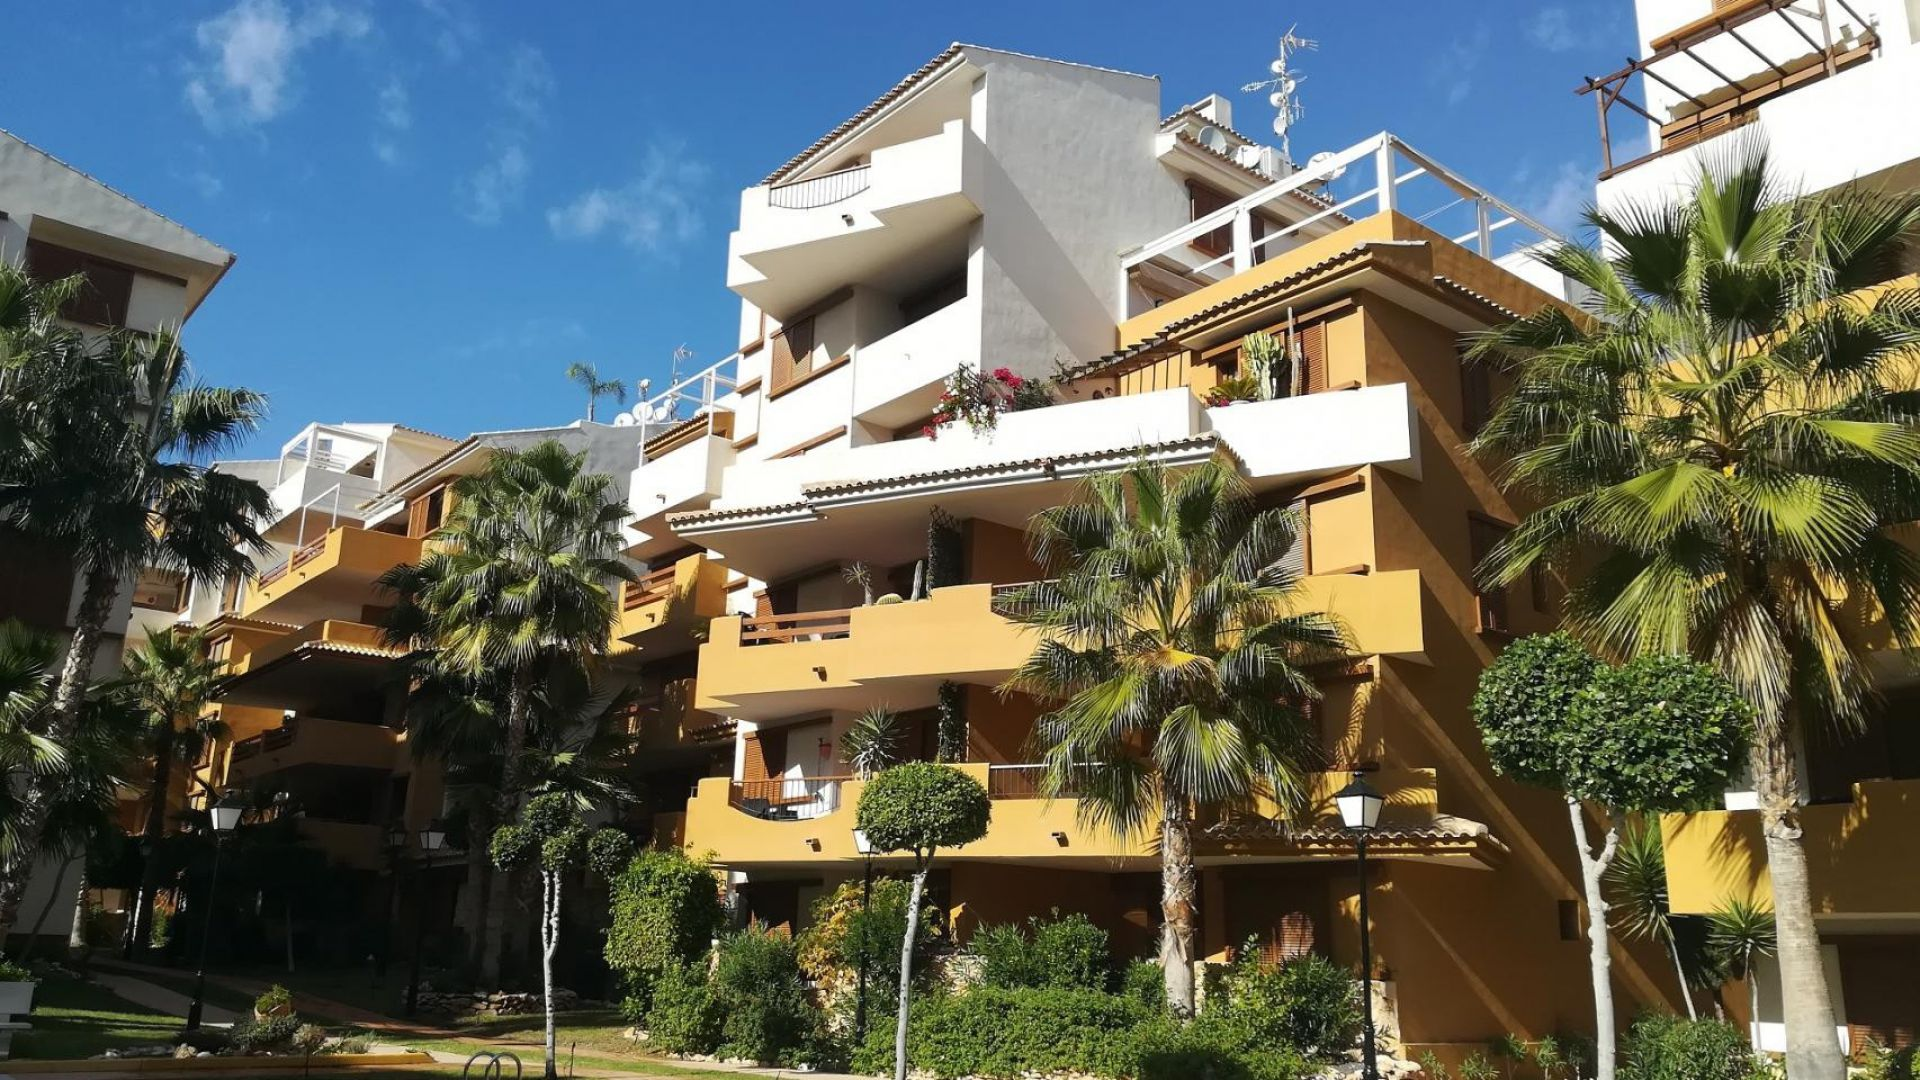 Apartment in Orihuela Costa, Alicante, Spain